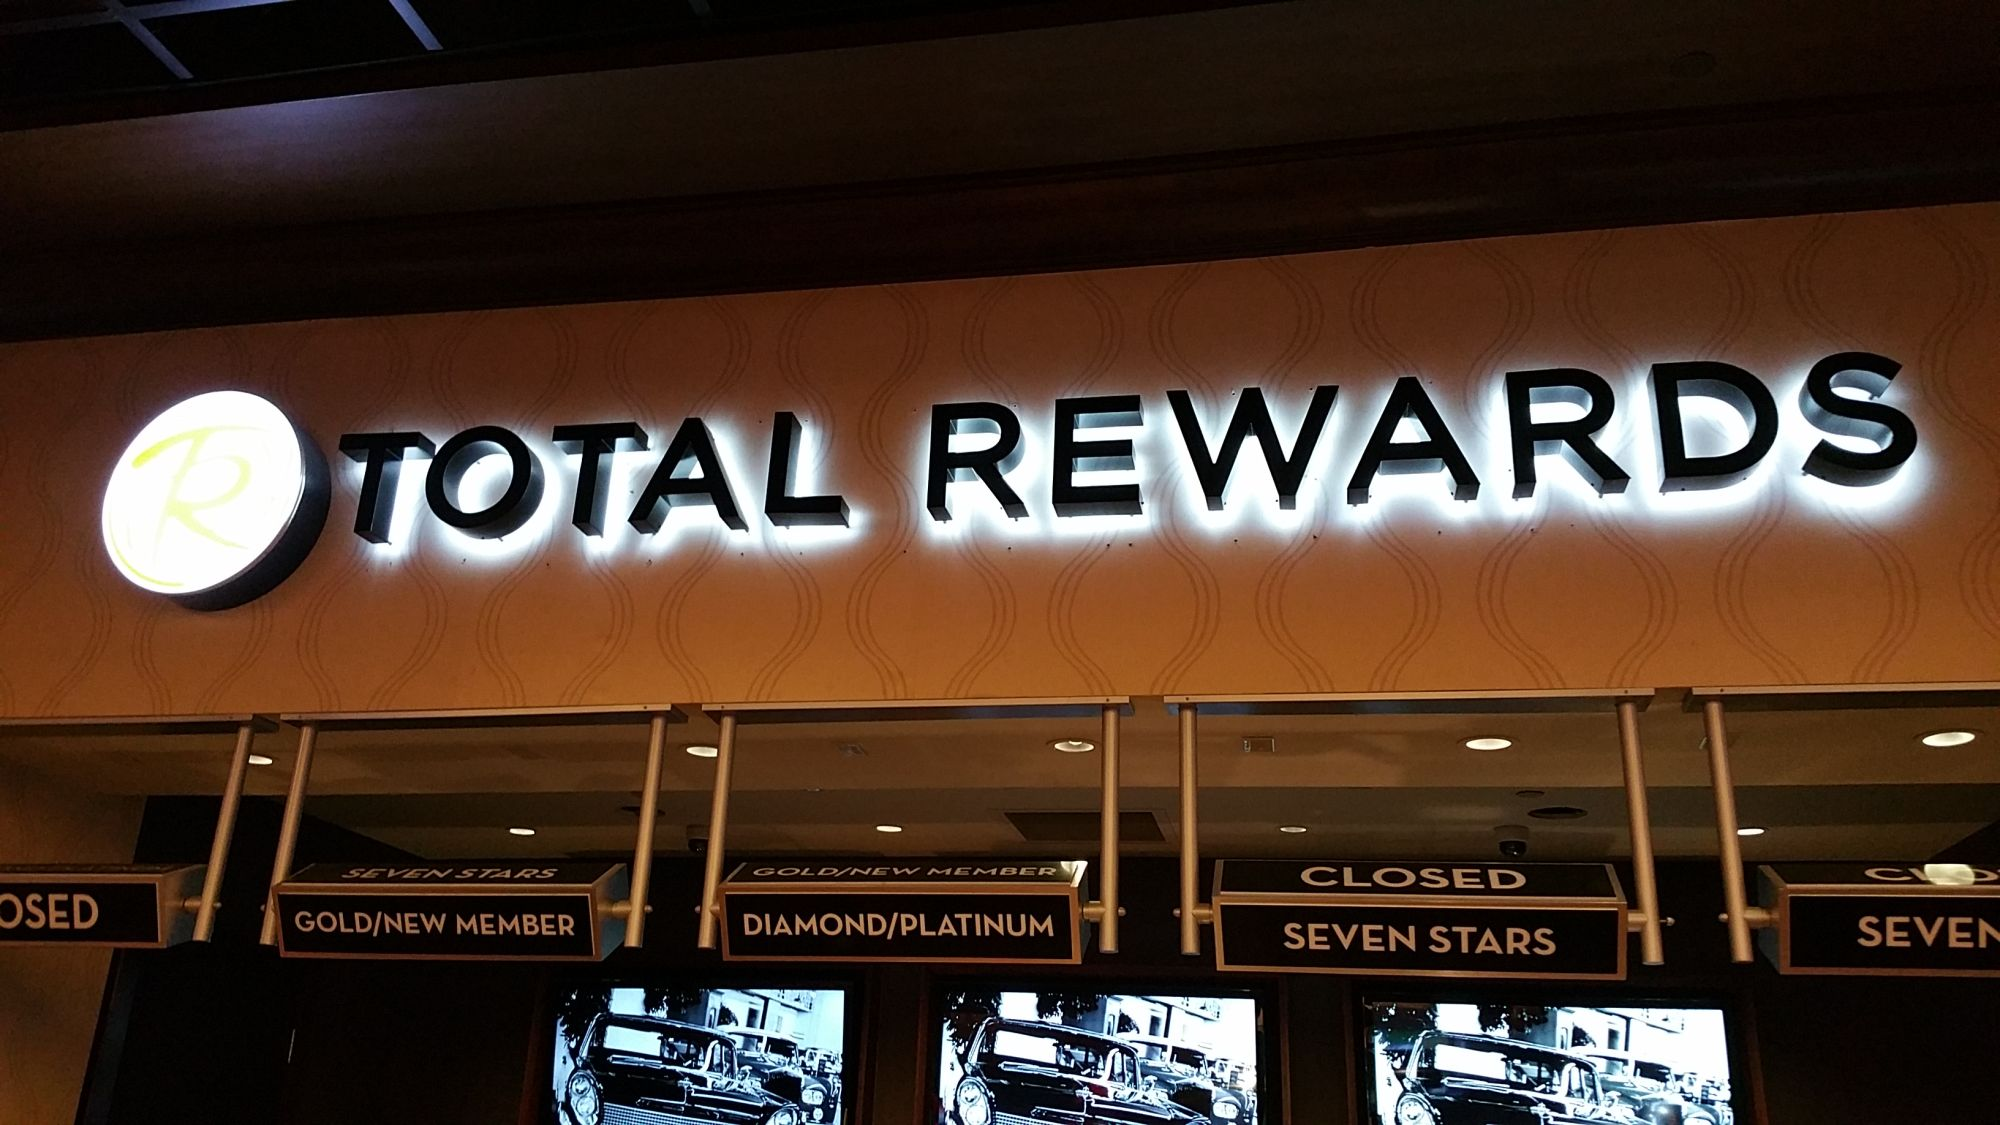 Total Rewards – A great loyalty program for Las Vegas and beyond